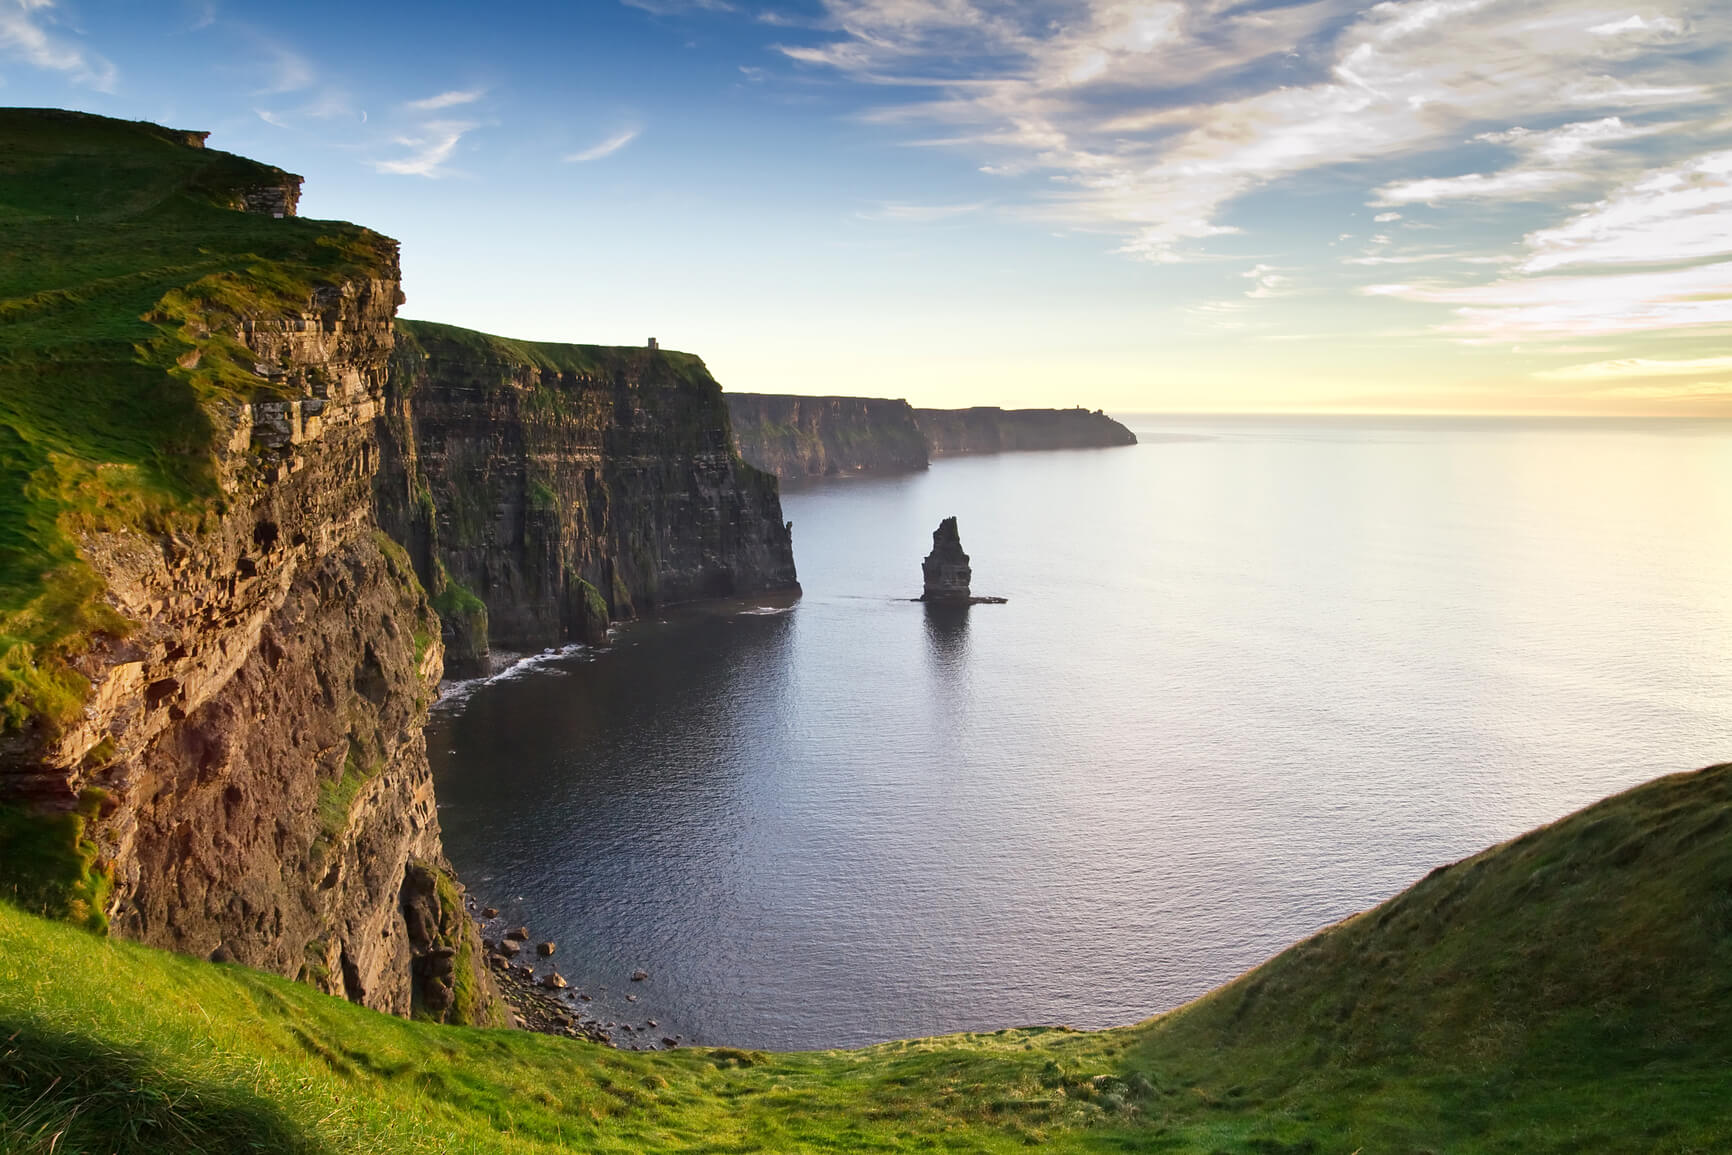 New York to Dublin, Ireland for only $304 roundtrip (Oct-Mar dates)